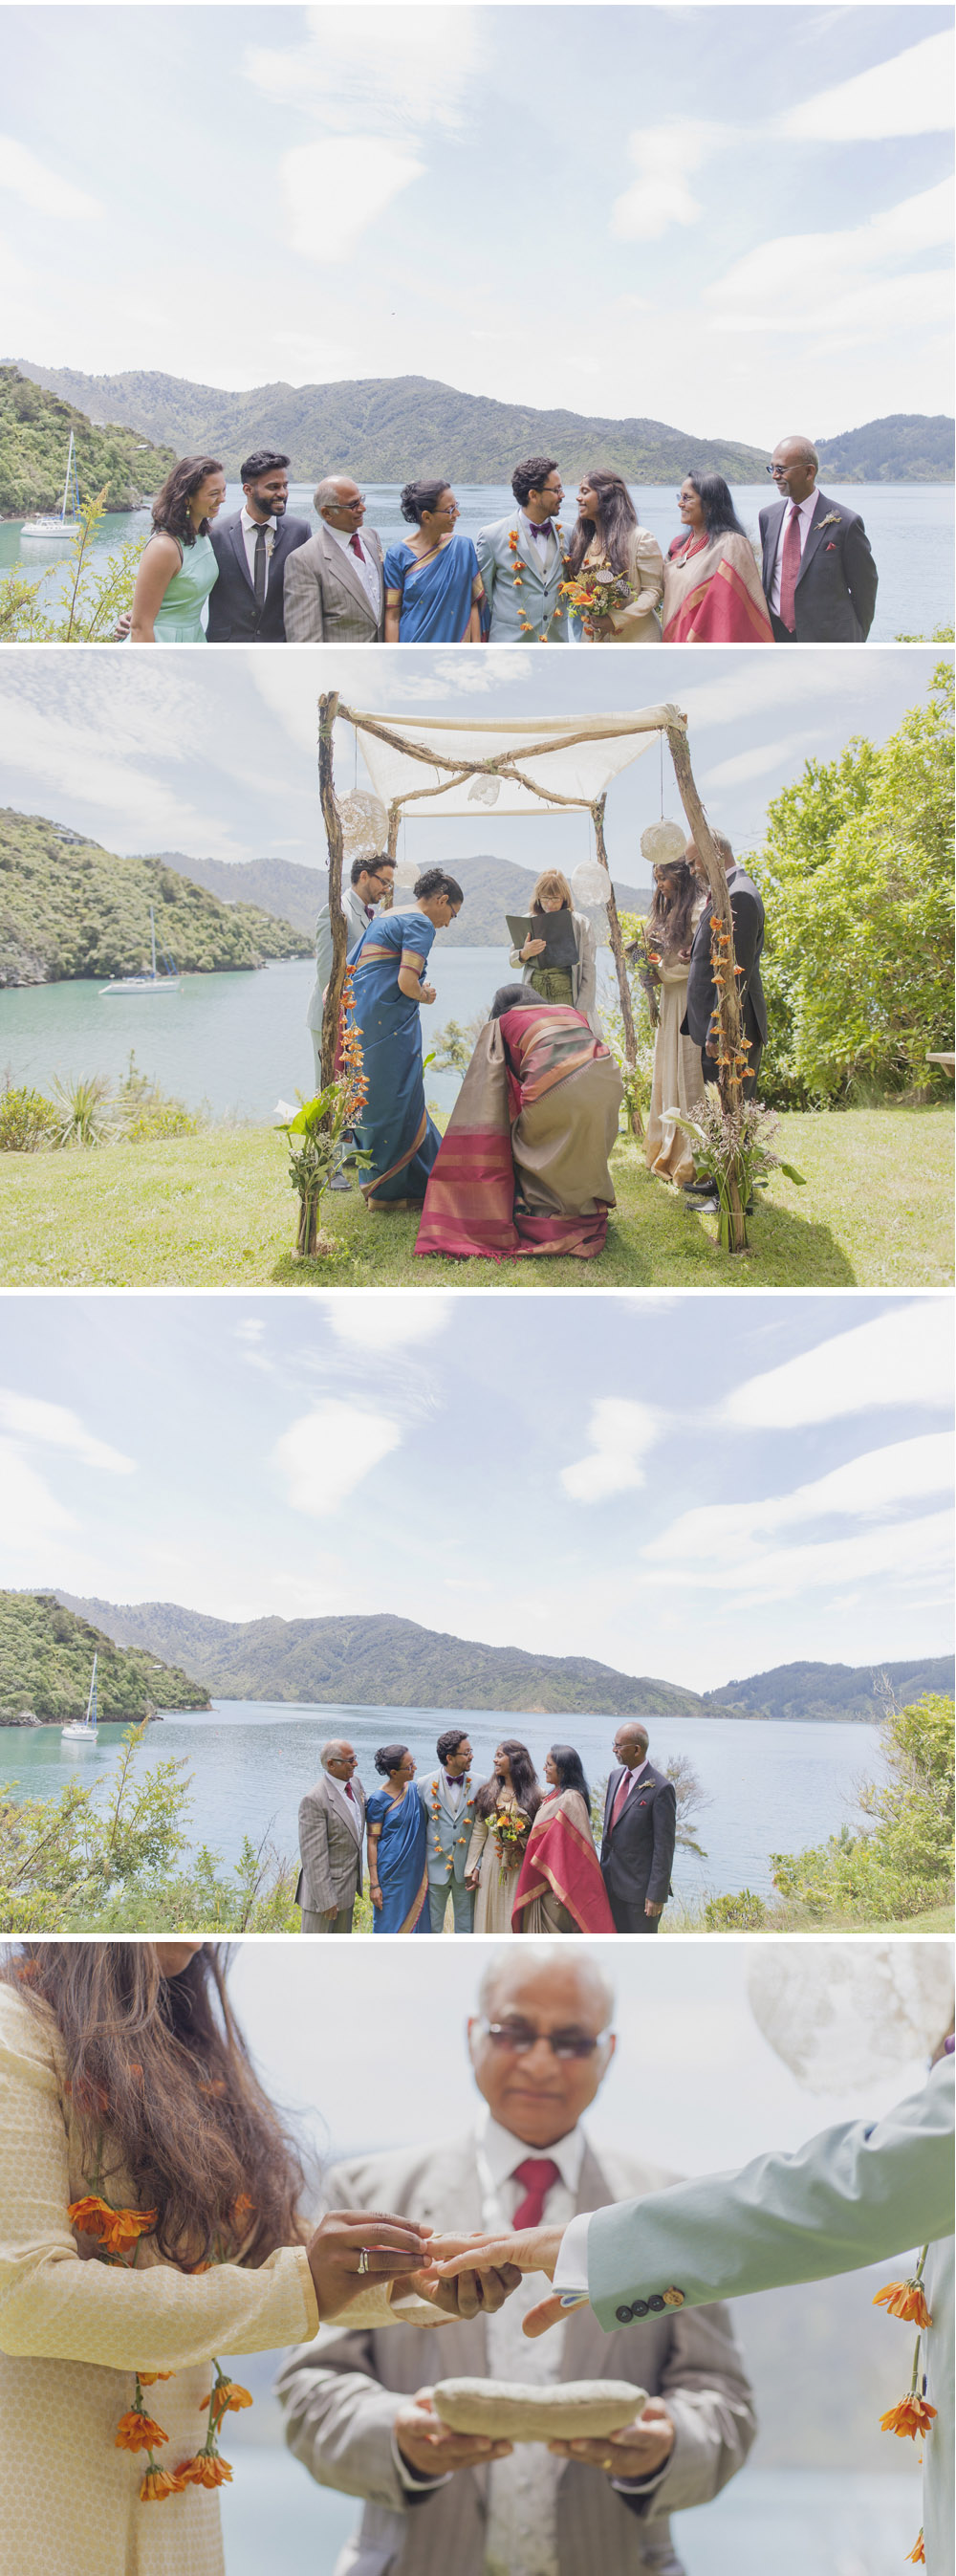 Wedding photography in the Marlborough Sounds.